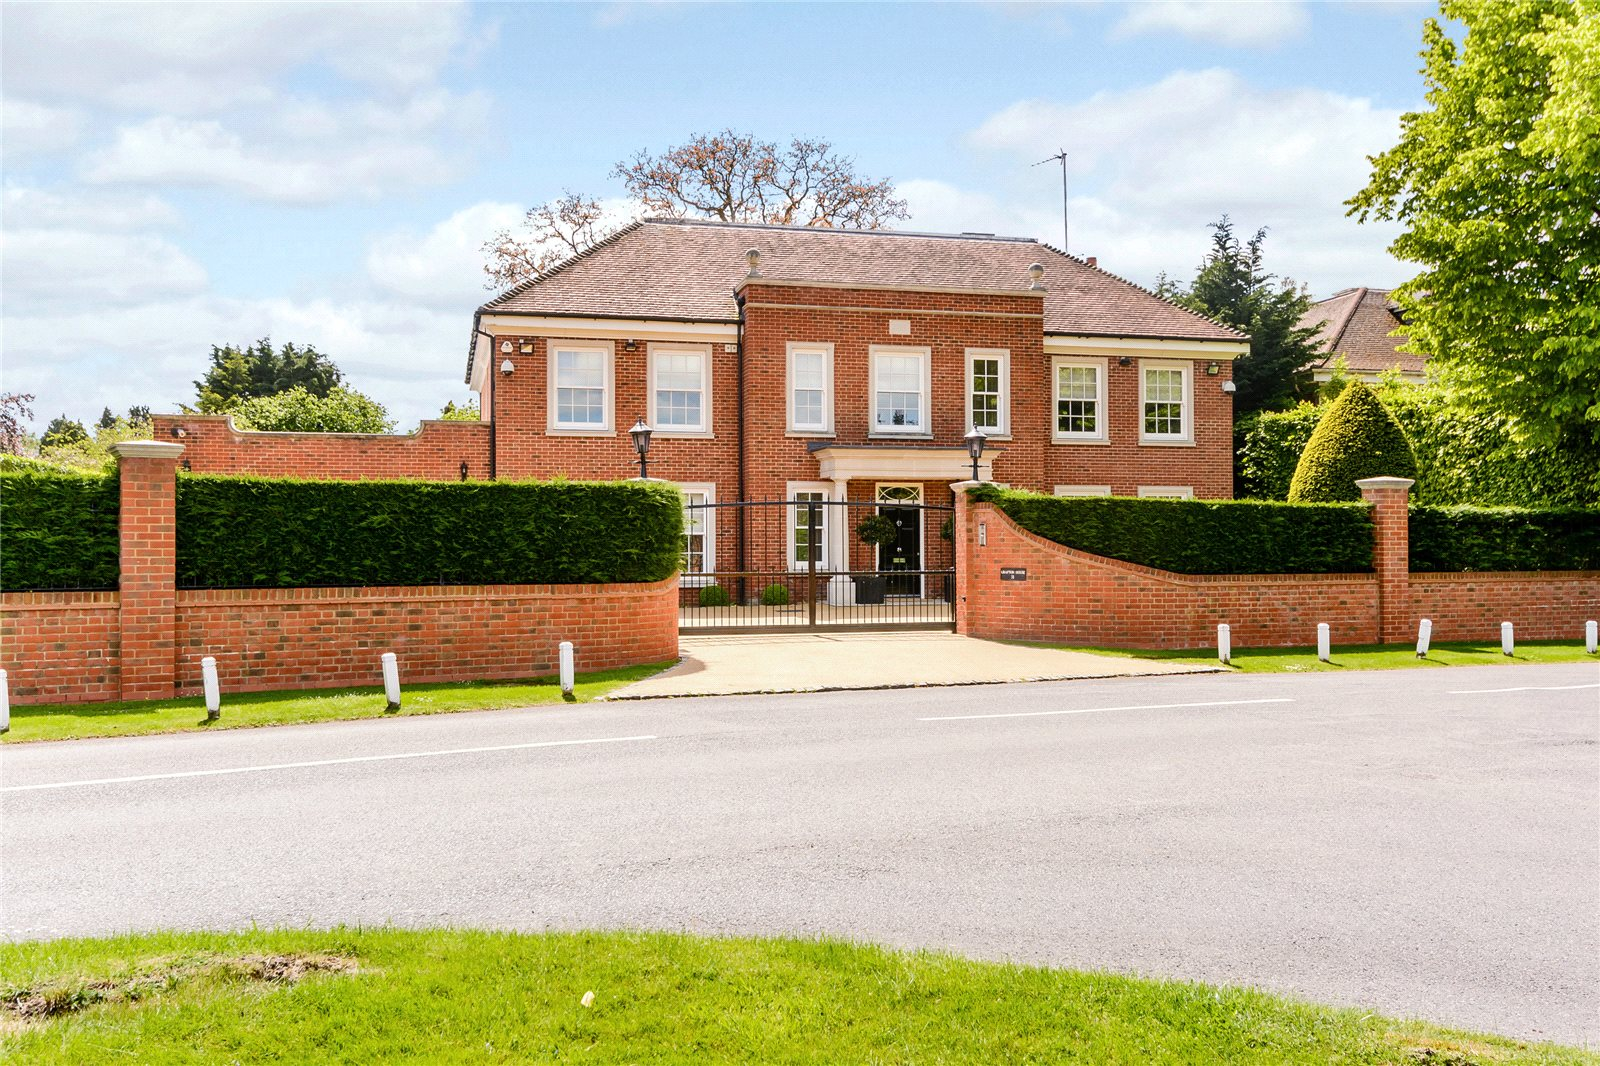 Casa Unifamiliar por un Venta en Camp Road, Gerrards Cross, Buckinghamshire, SL9 Gerrards Cross, Inglaterra